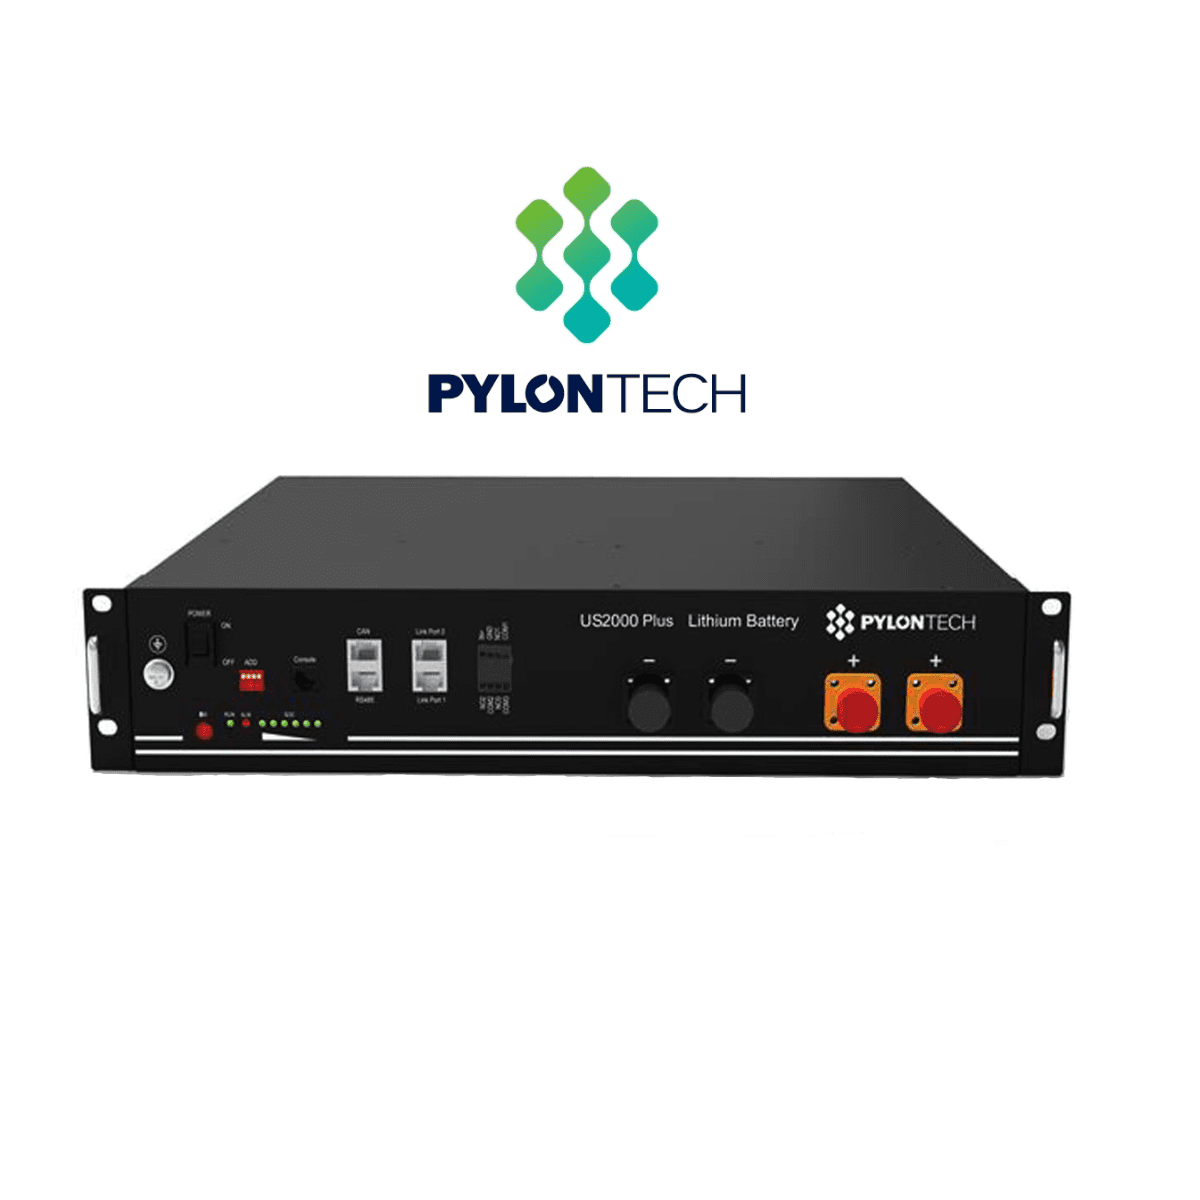 PylonTech US2000B Plus 2.4KWH Lithium Battery Module 48V